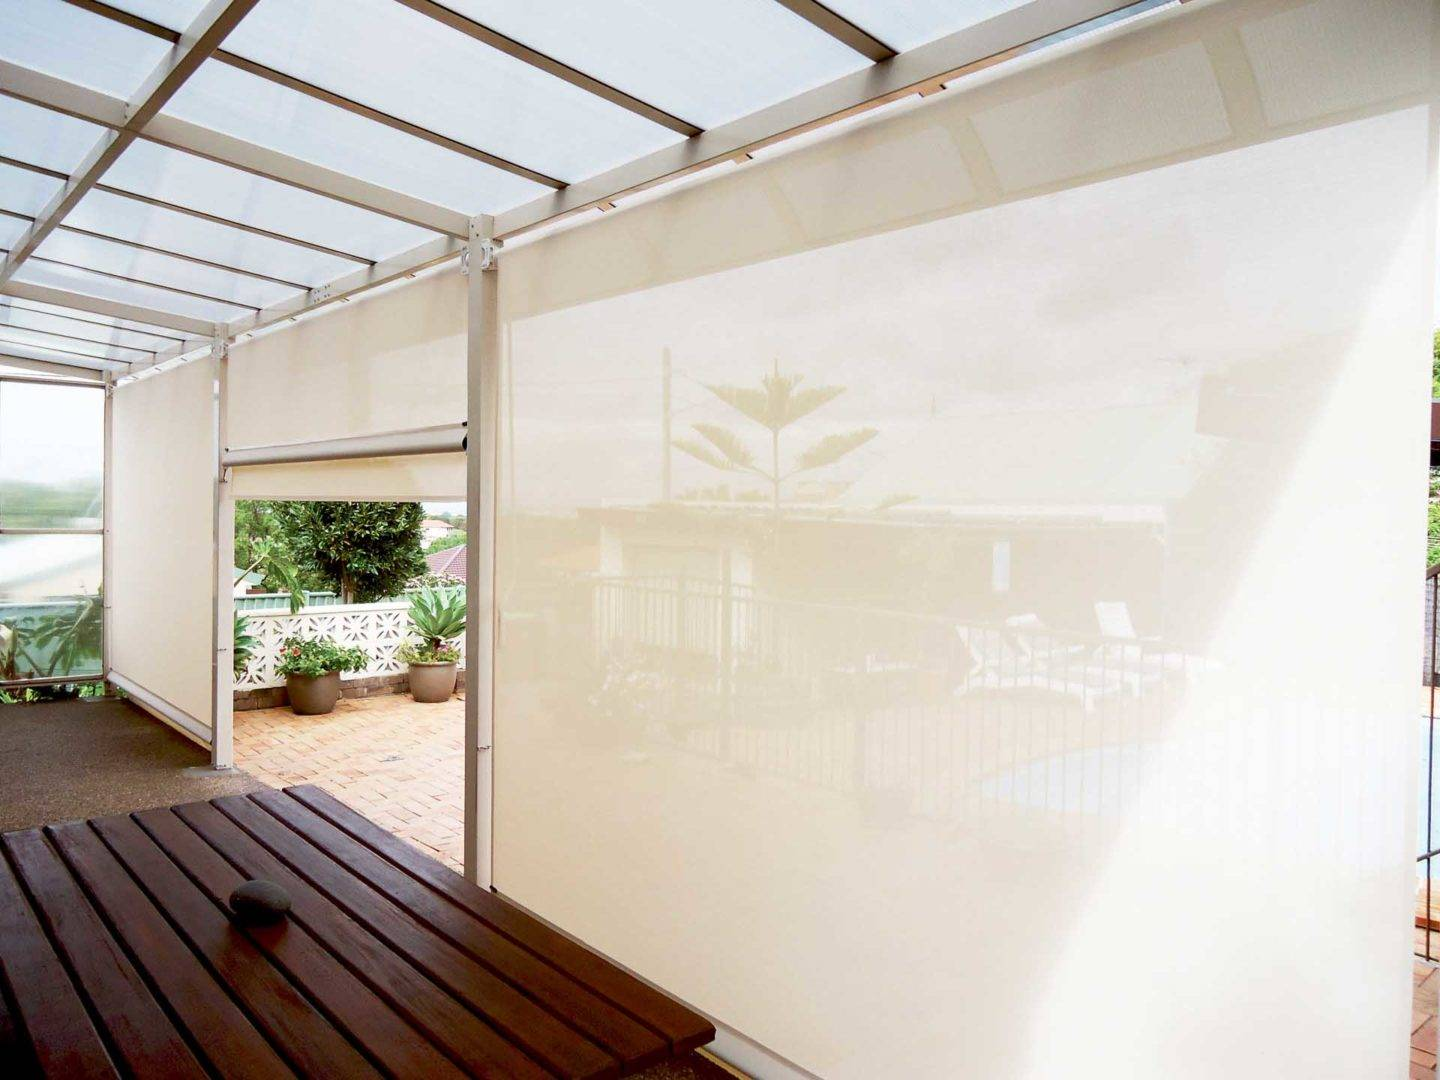 Opaque outdoor blinds could transform your backyard space.